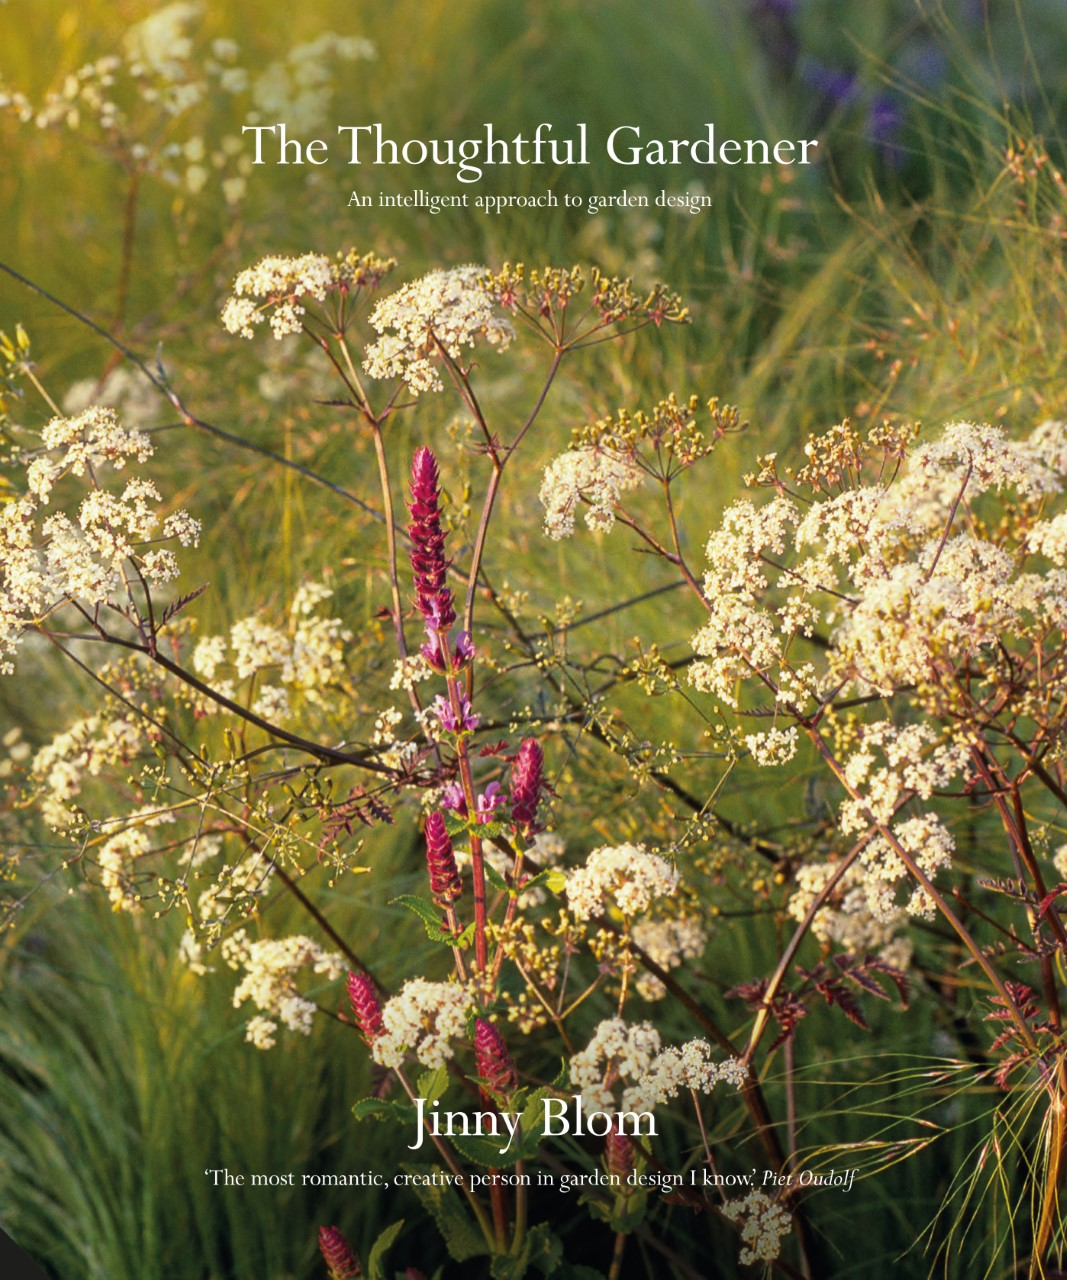 Win 'The Thoughtful Gardener' By Jinny Blom